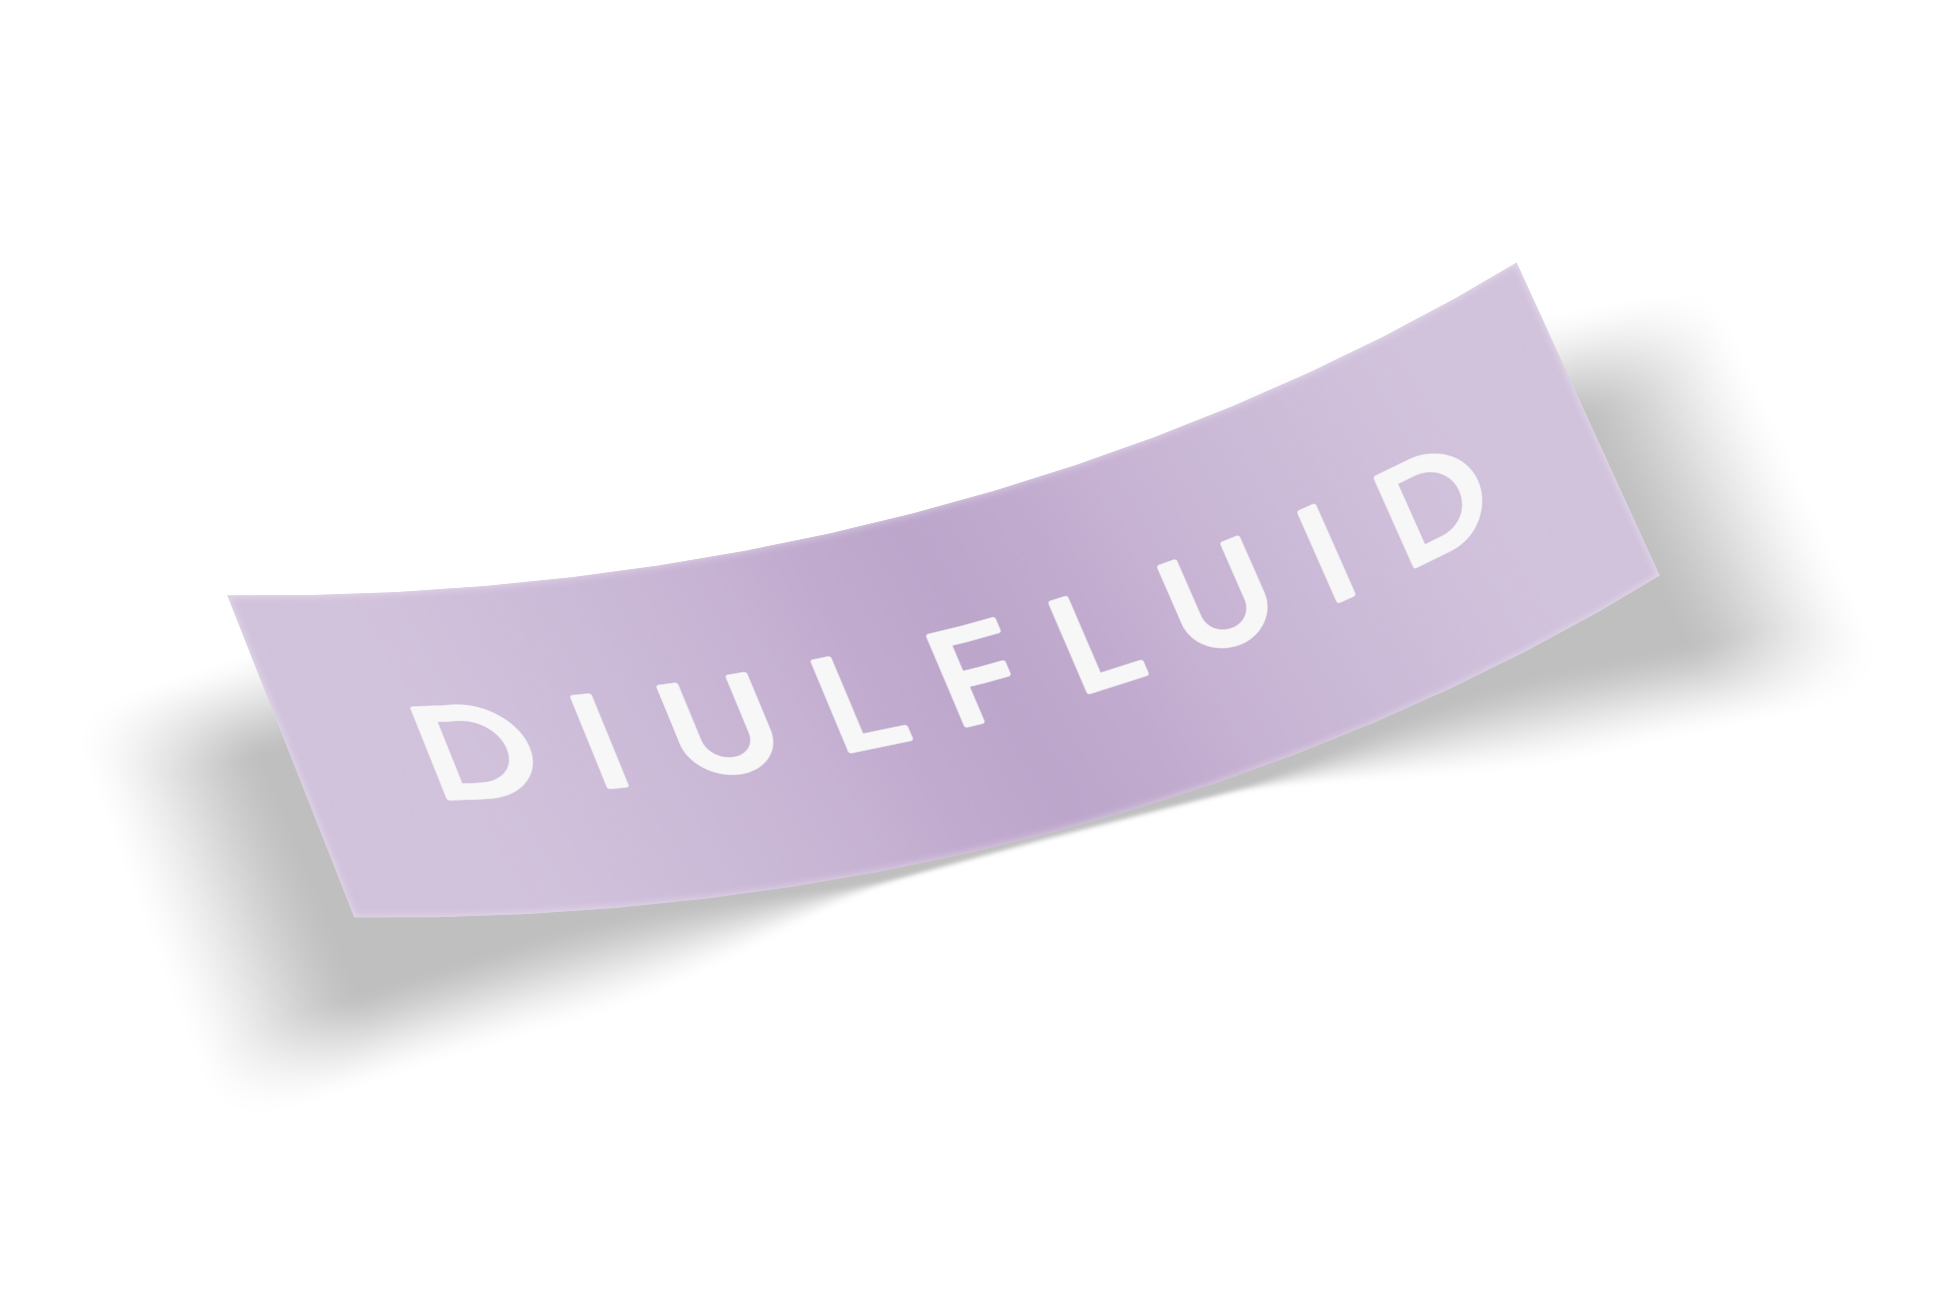 diulfluid sticker - sold out